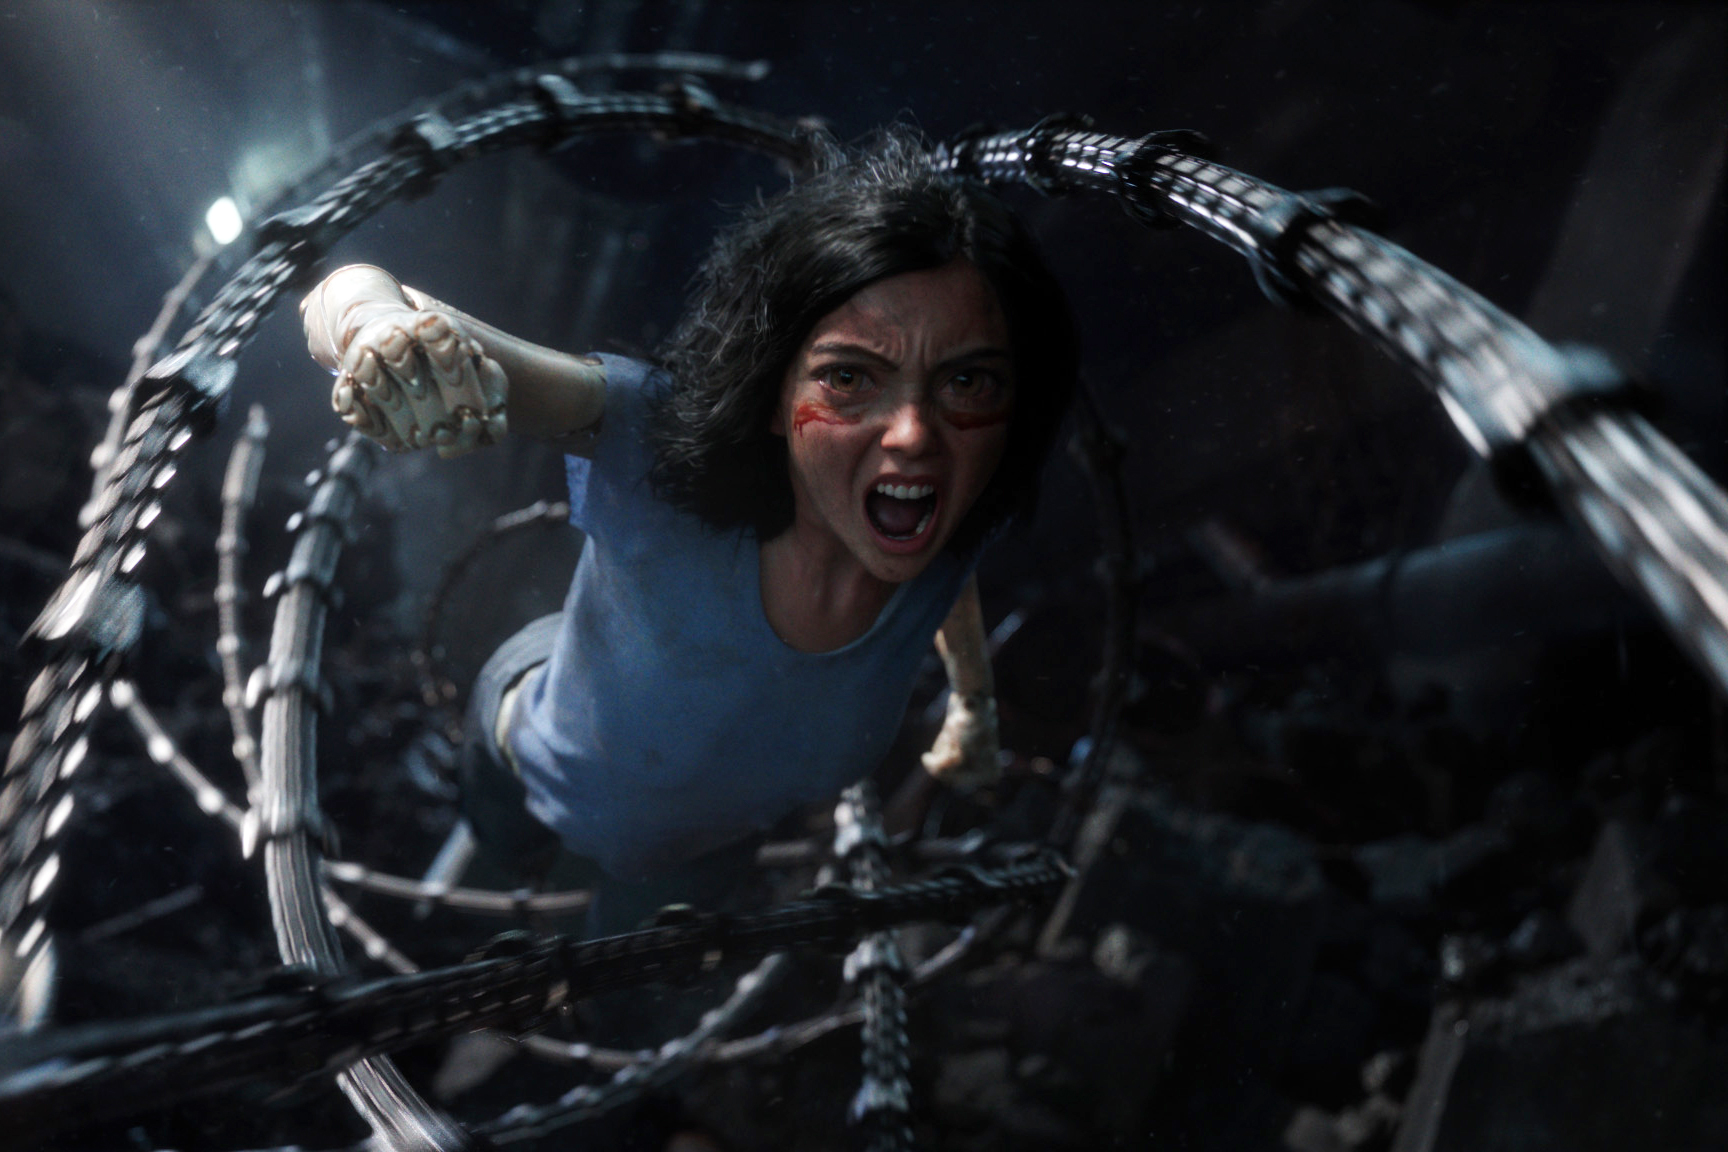 'Alita: Battle Angel' Review: A Cyberheroine Story Way Past Its Sell-By Date